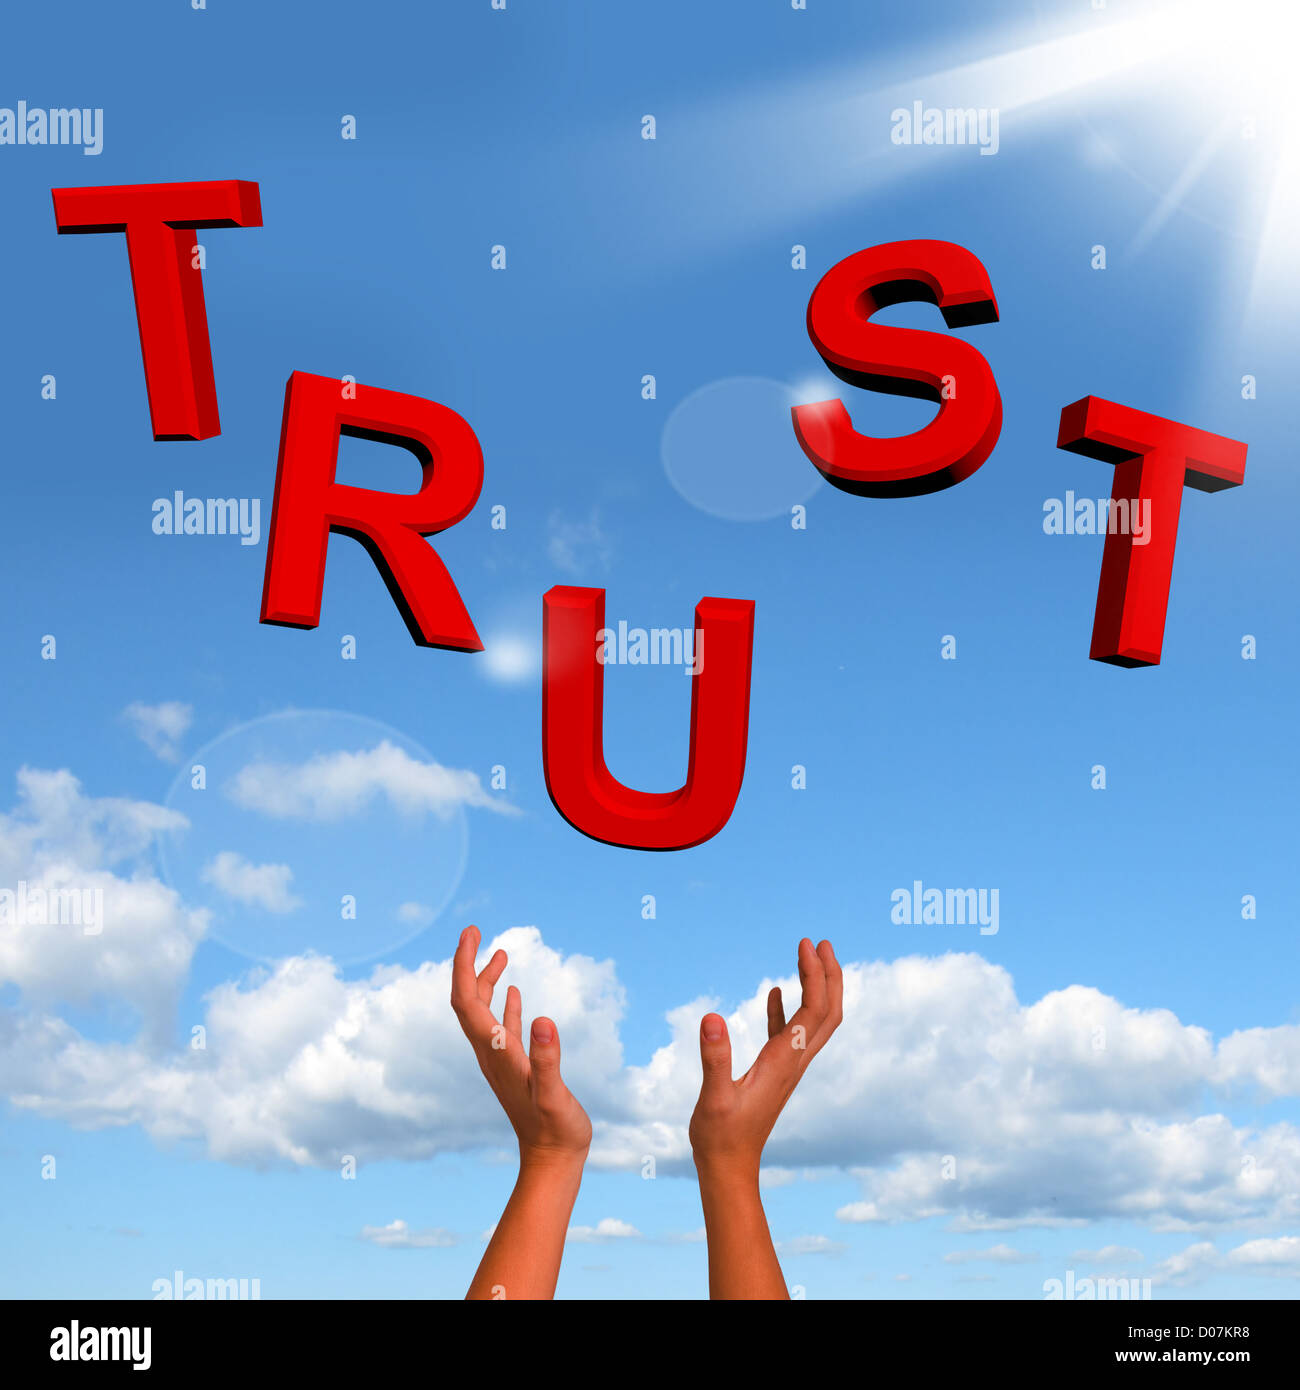 Catching letters spelling trust as symbol for faith and beliefs catching letters spelling trust as symbol for faith and beliefs biocorpaavc Choice Image